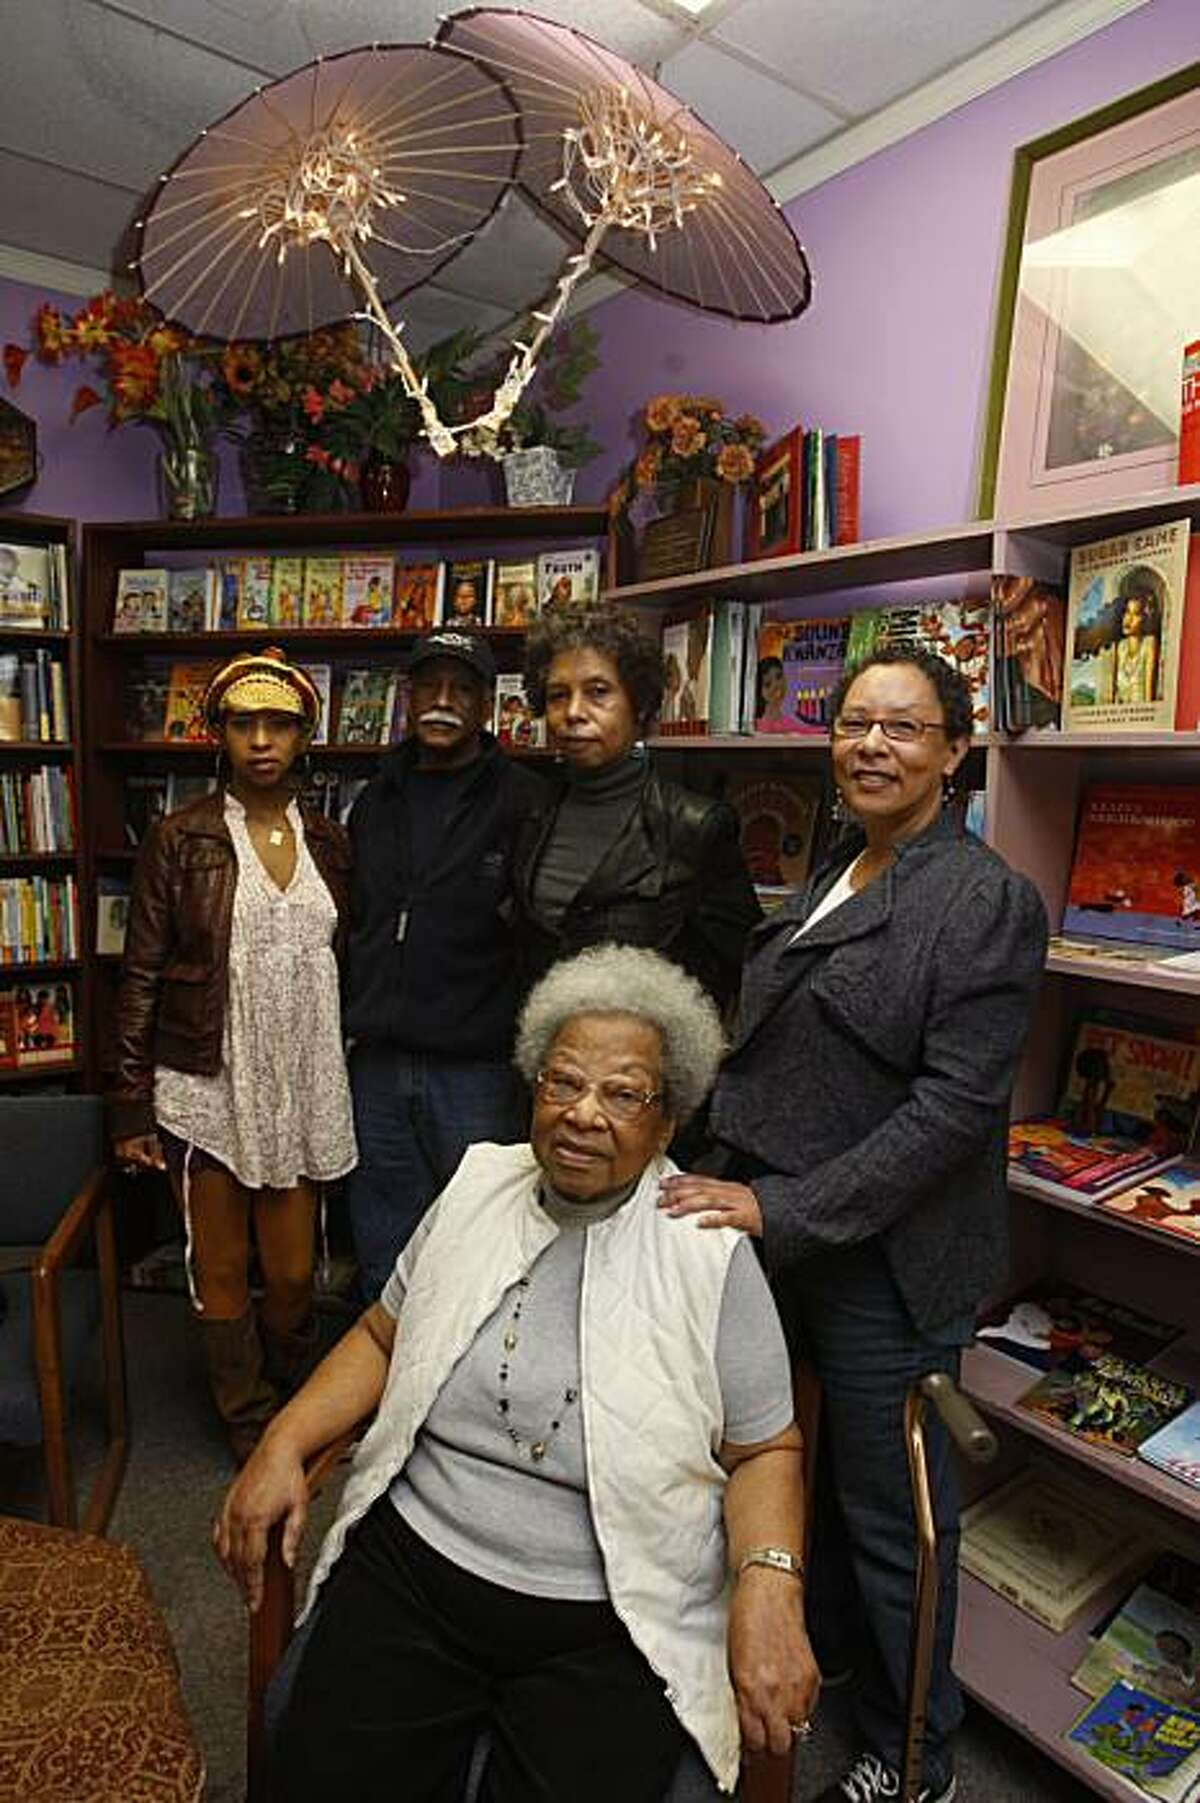 Dr. Raye Richardson (front), founder of Marcus Books, Blanche Richardson (right), Karen Johnson (behind Raye),Tamiko Johnson (far left), and Gregory Johnson at Marcus Books in San Francisco, Ca., on Monday, January 13, 2010.